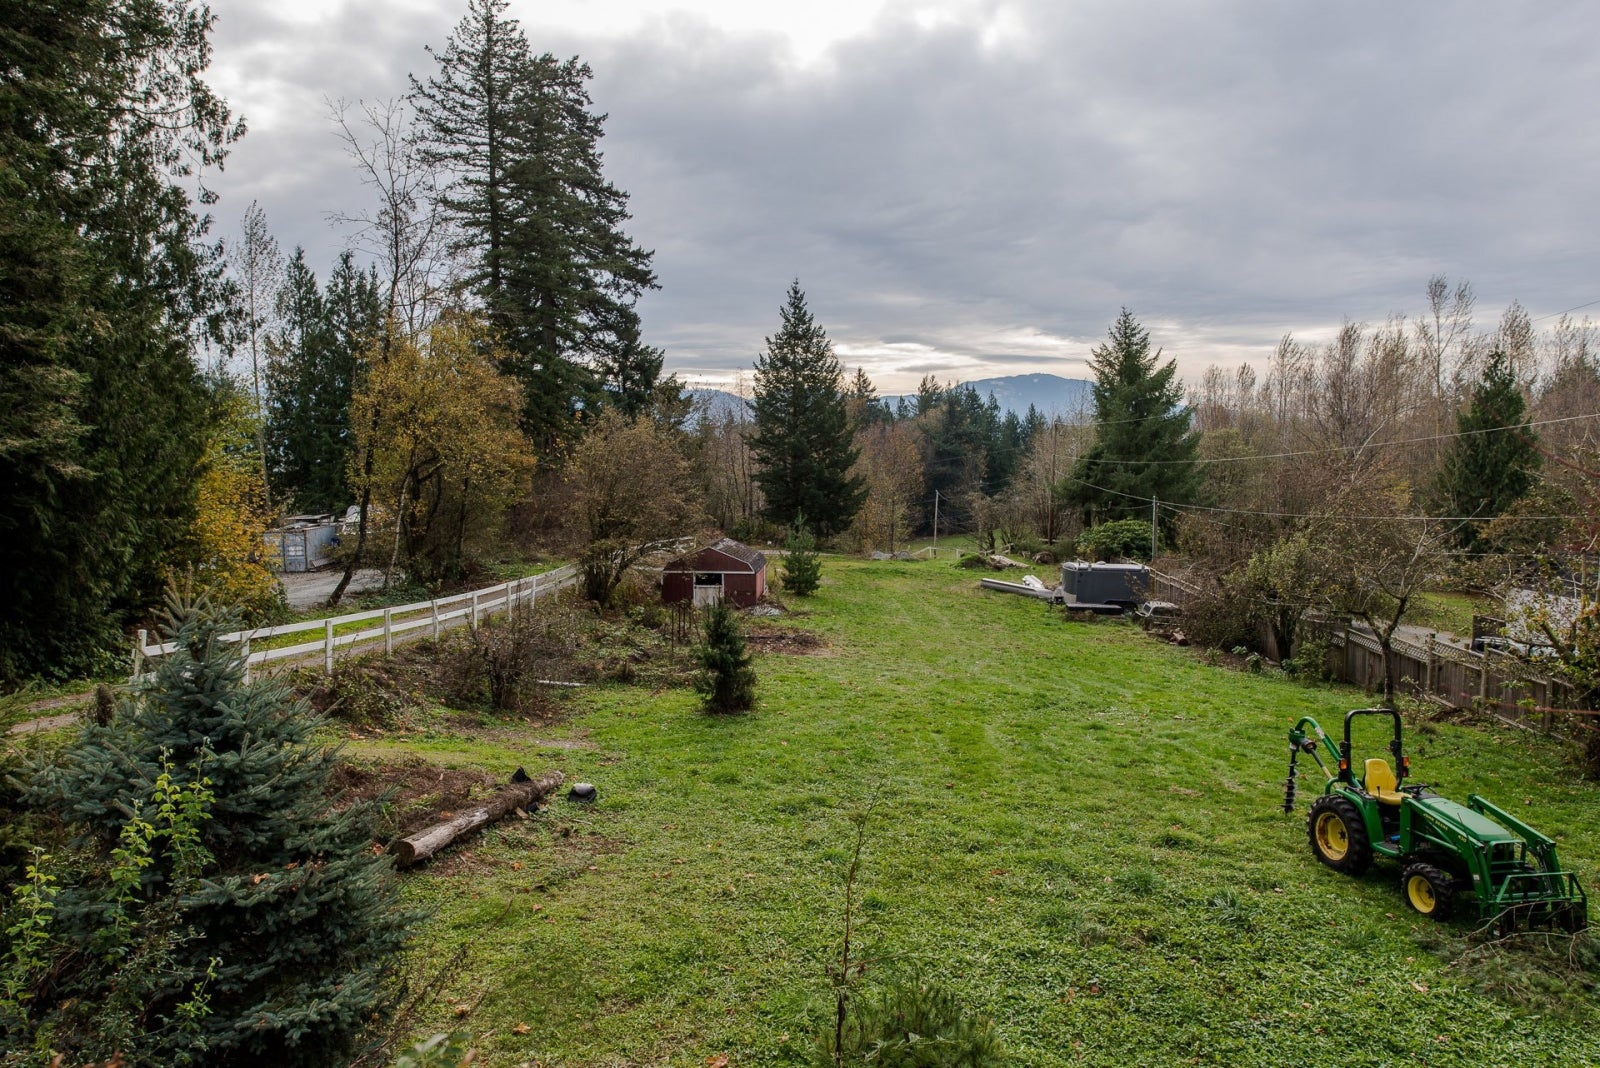 37471 ATKINSON ROAD - Sumas Mountain House with Acreage for sale, 3 Bedrooms (R2220193) #5